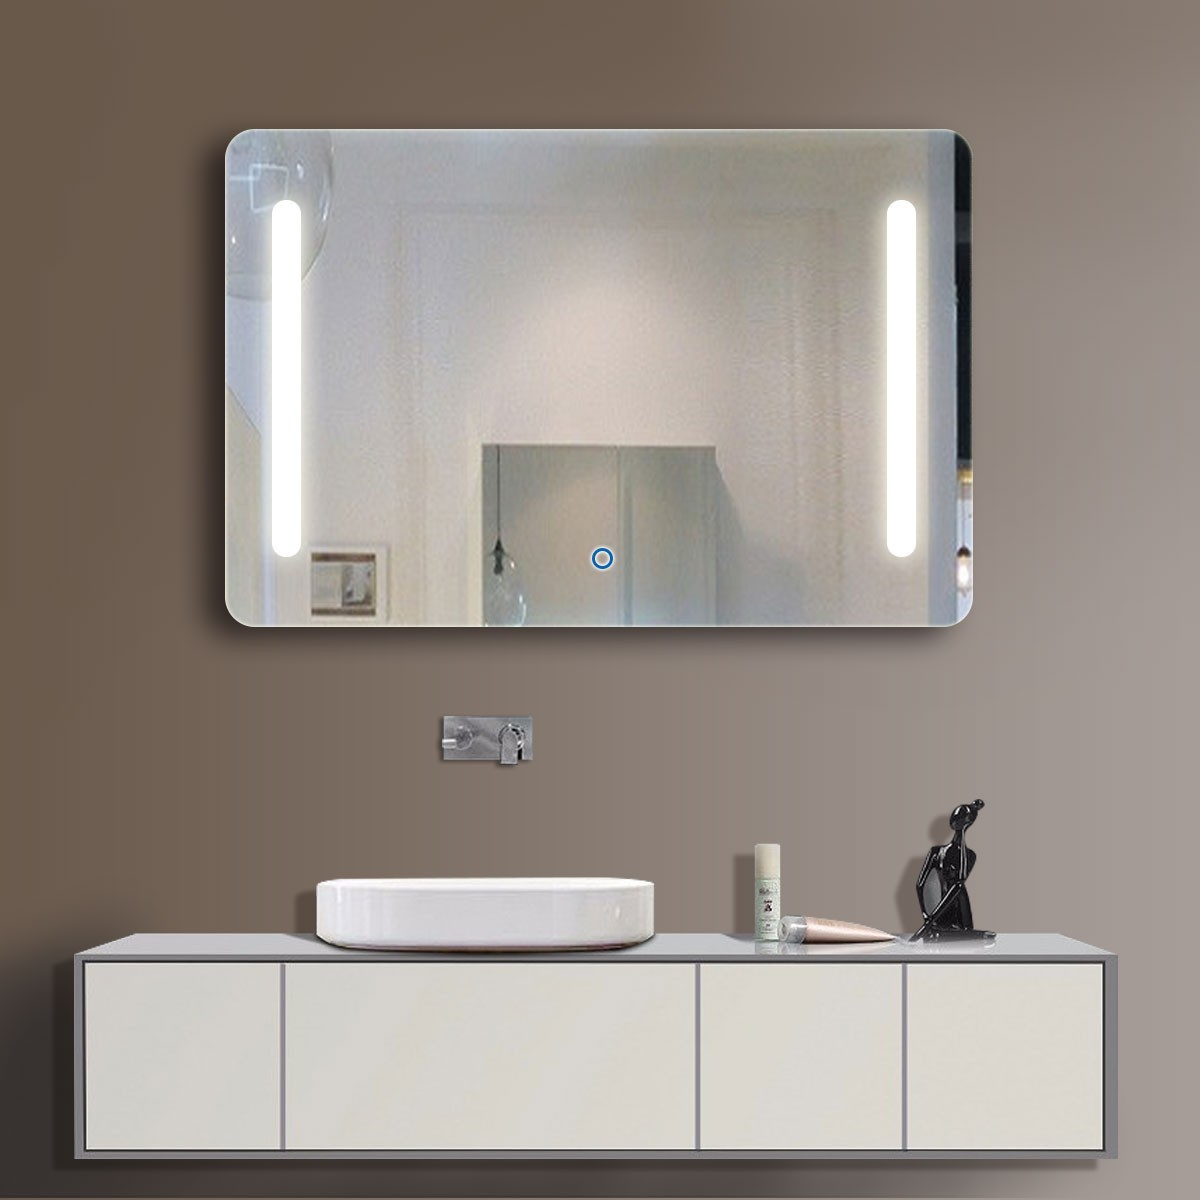 36 x 28 In Horizontal LED Bathroom Mirror, Touch Button (DK-OD-N027)